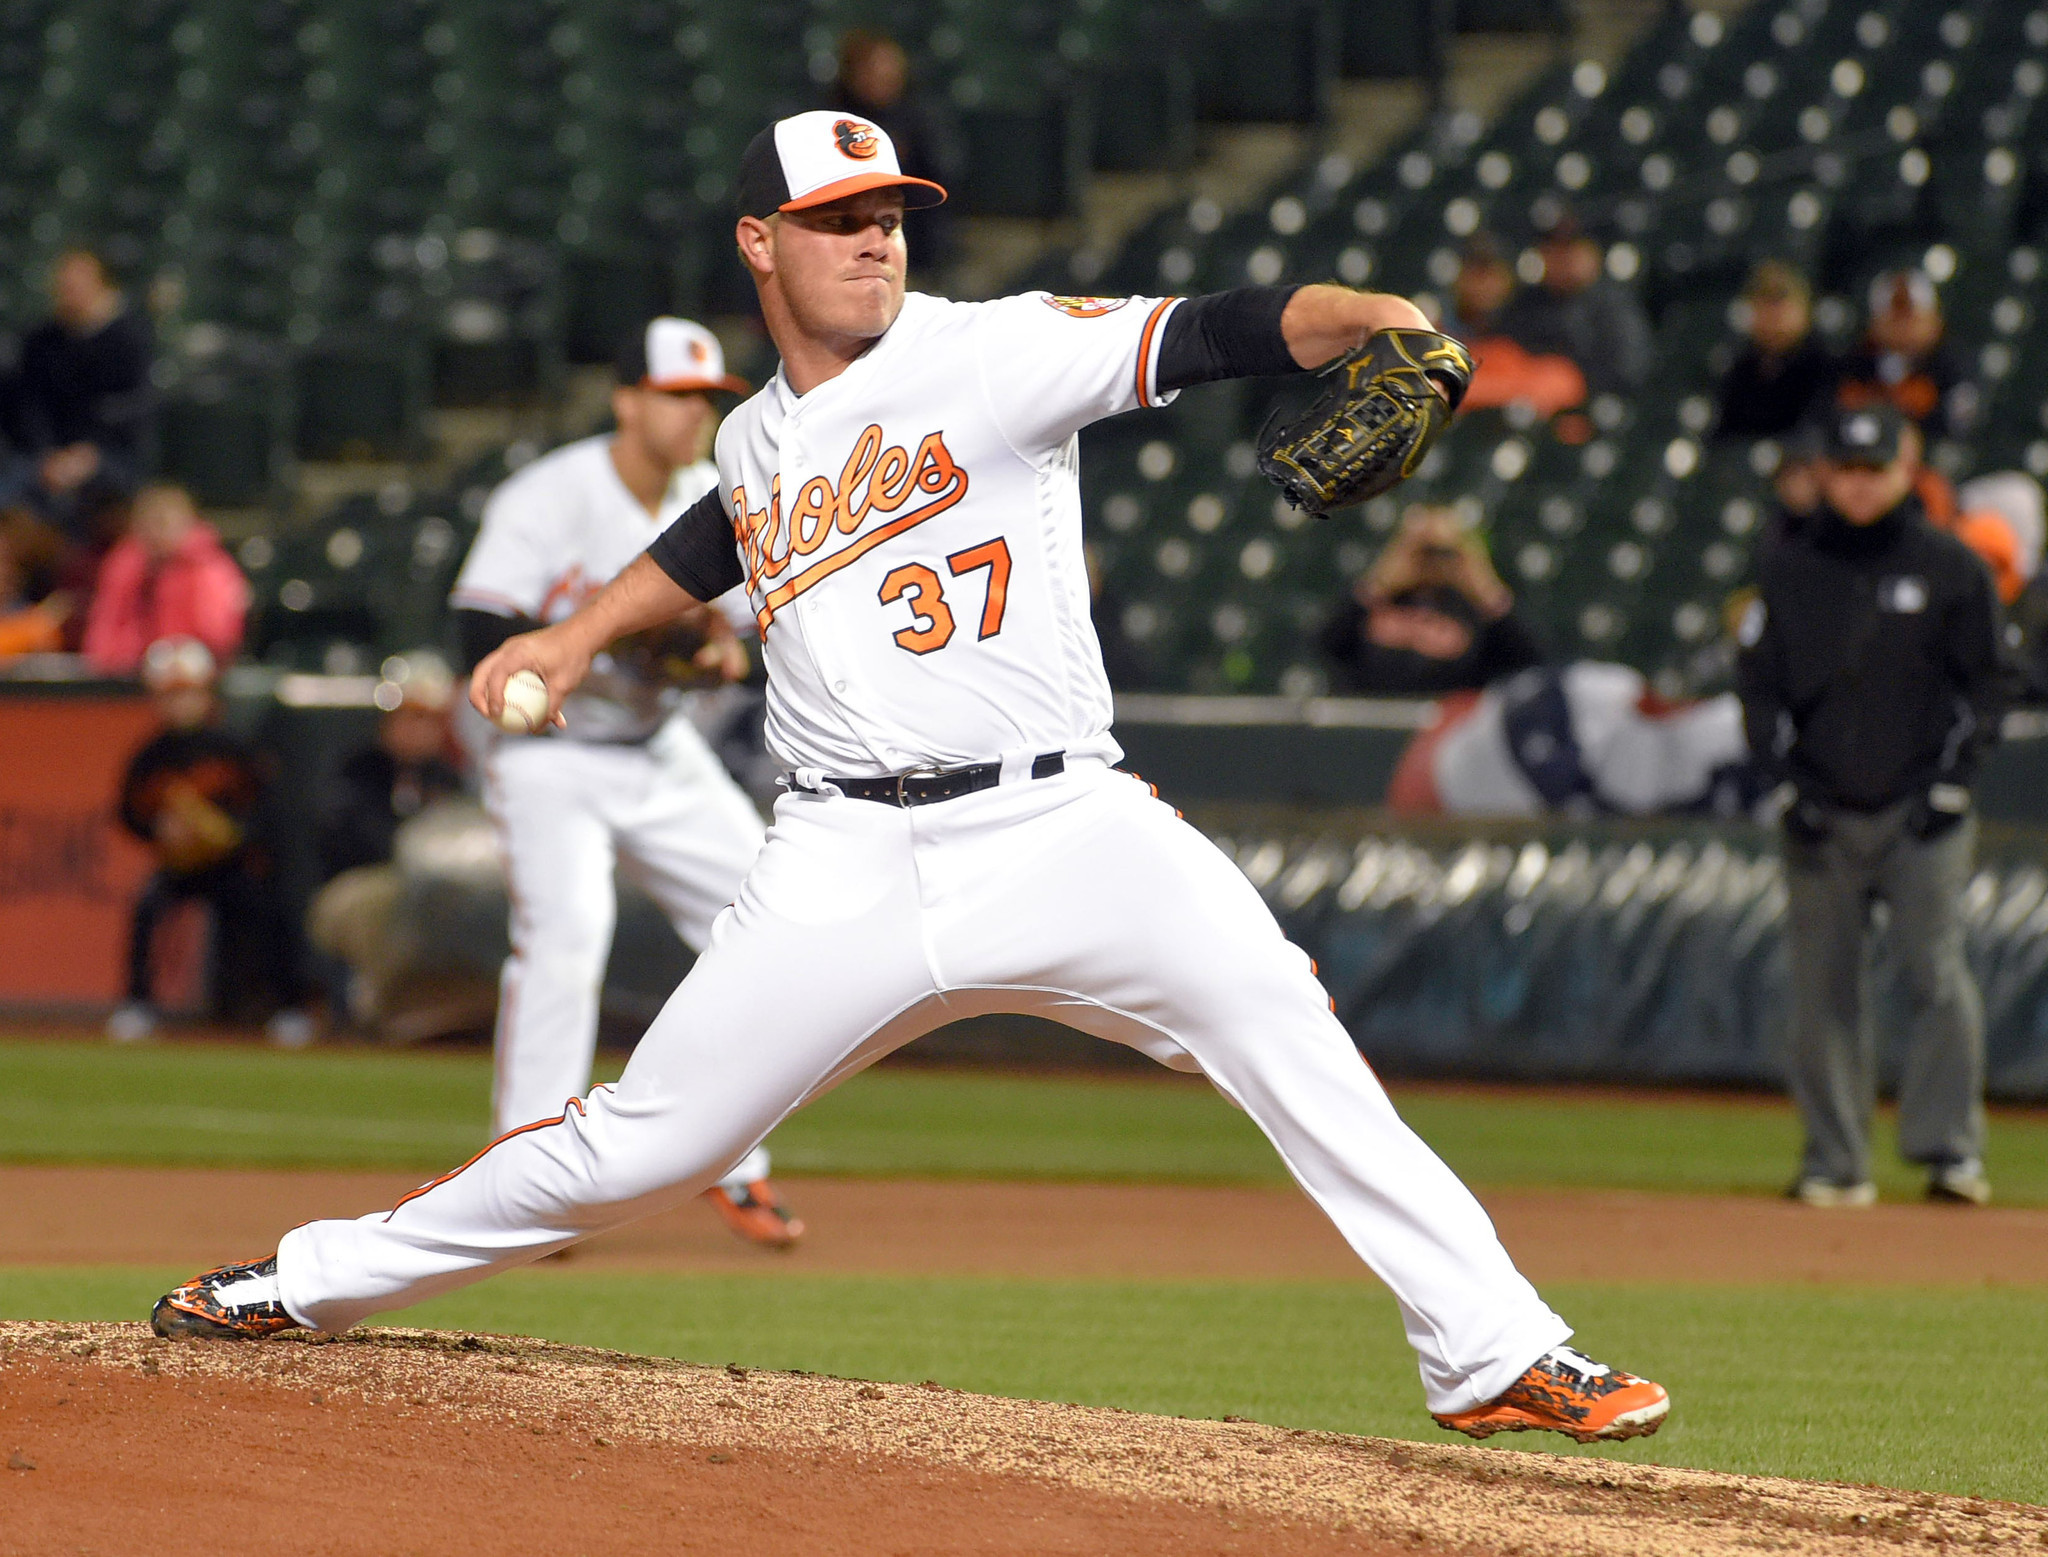 Orioles thoughts and observations on low-scoring games and Dylan Bundy's first start